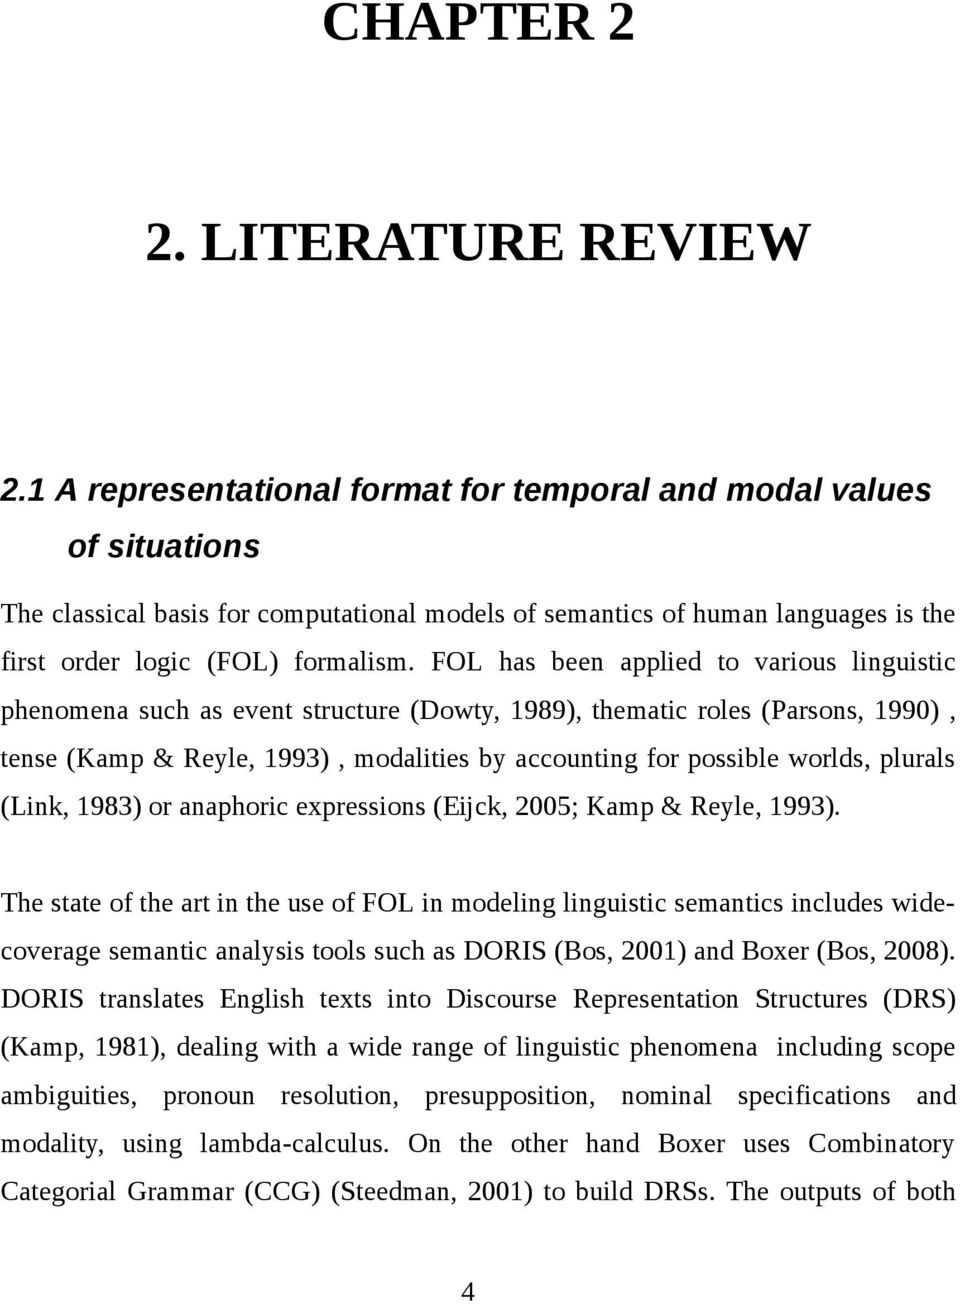 FOL has been applied to various linguistic phenomena such as event structure (Dowty, 1989), thematic roles (Parsons, 1990), tense (Kamp & Reyle, 1993), modalities by accounting for possible worlds,